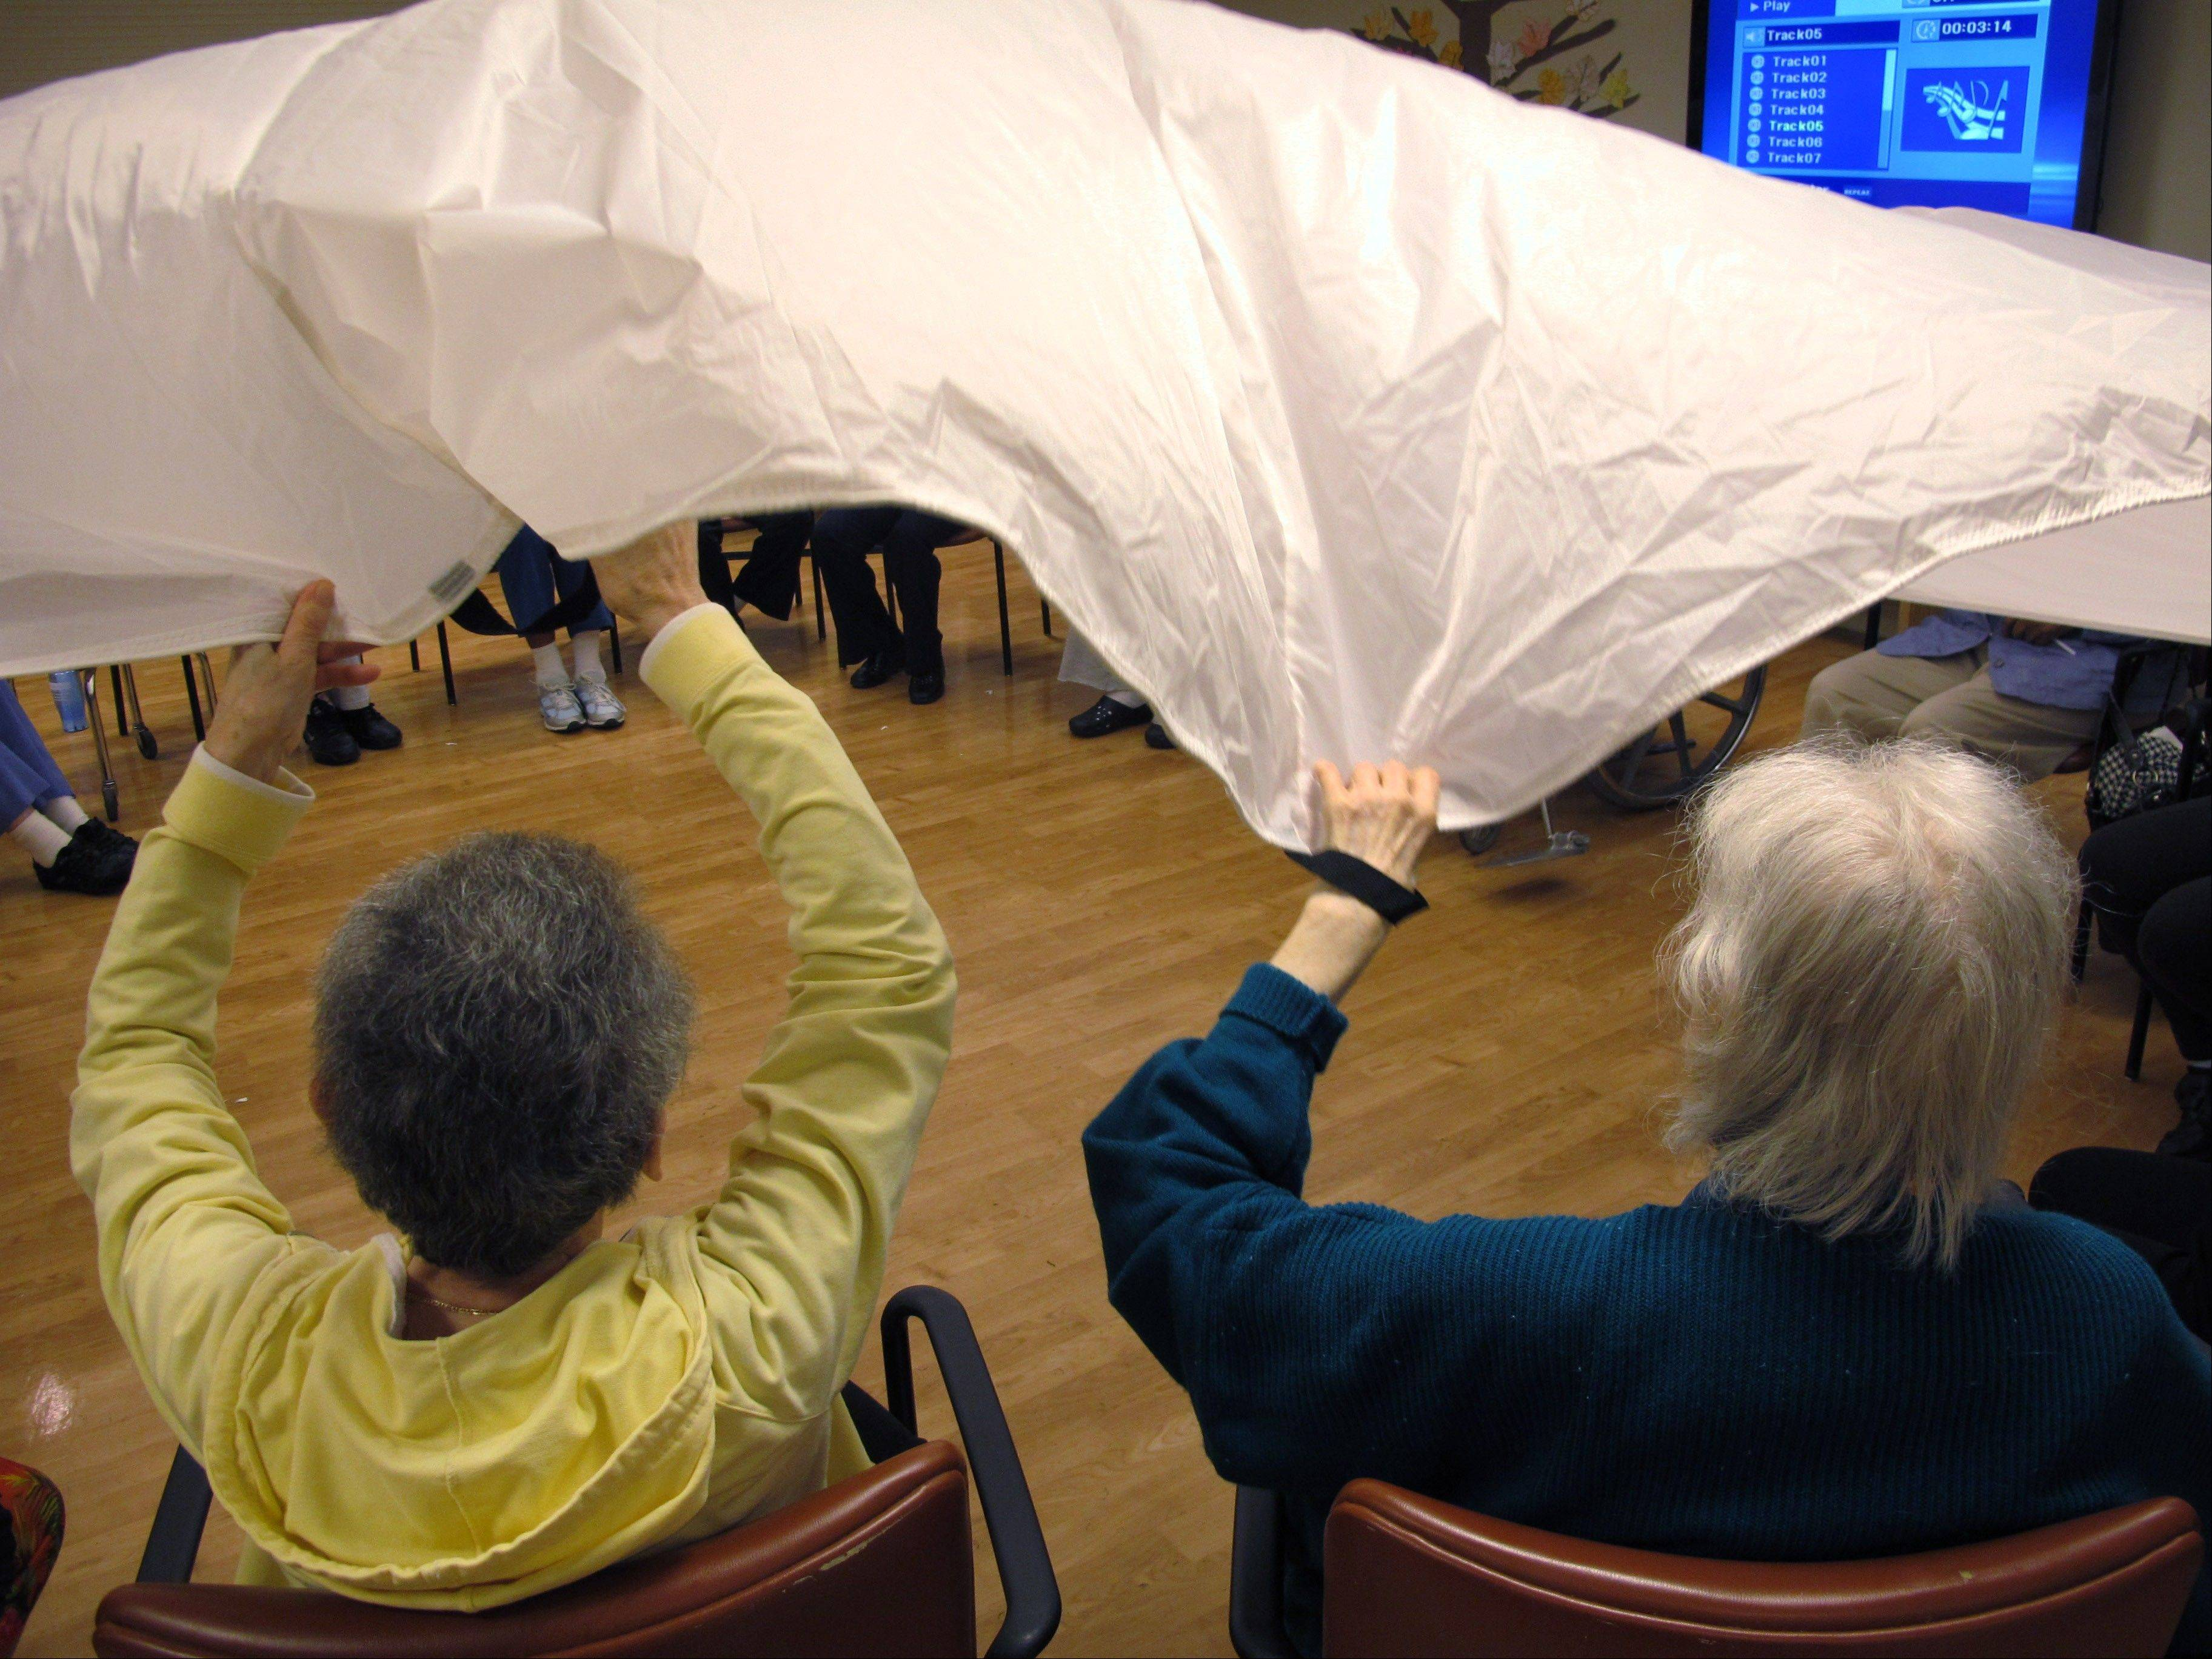 Dementia patients sitting in a circle formation do an exercise called �the parachute� at the Hebrew Home at Riverdale in the Bronx borough of New York. The Hebrew Home has a program that provides care and activities overnight for dementia victims with sleep problems.